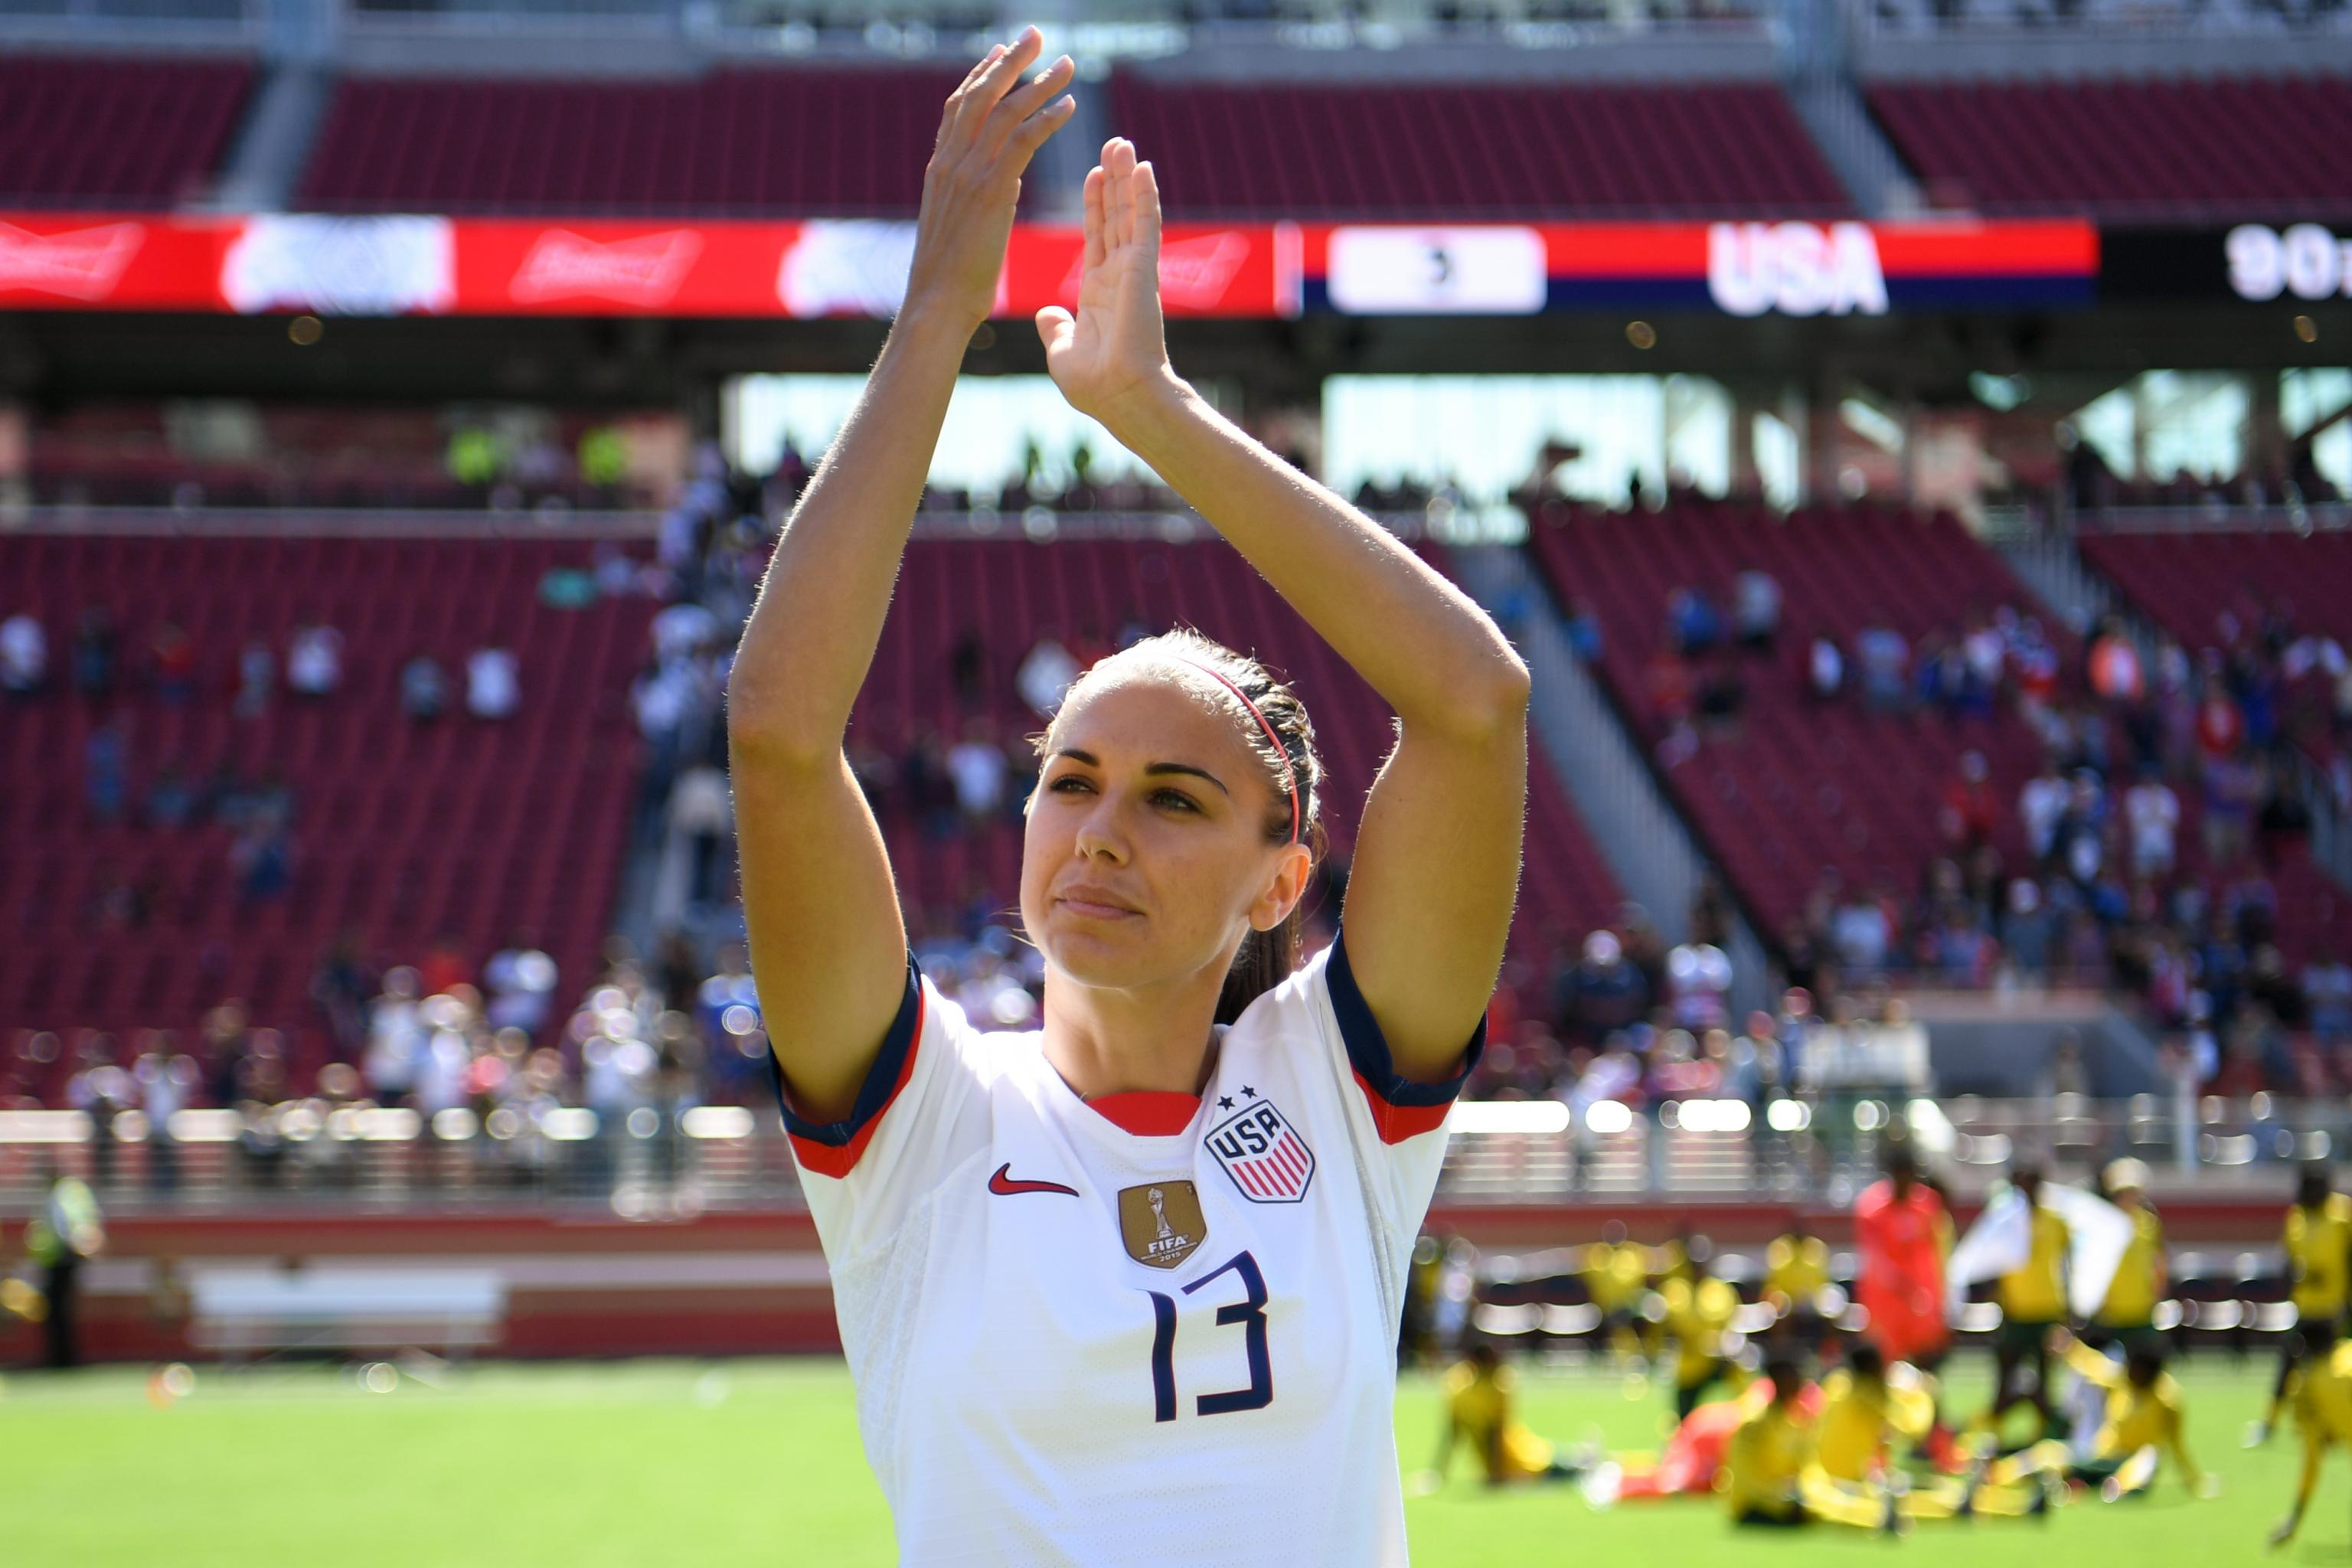 USA Women's Soccer Roster 2019: Alex Morgan and Top Players